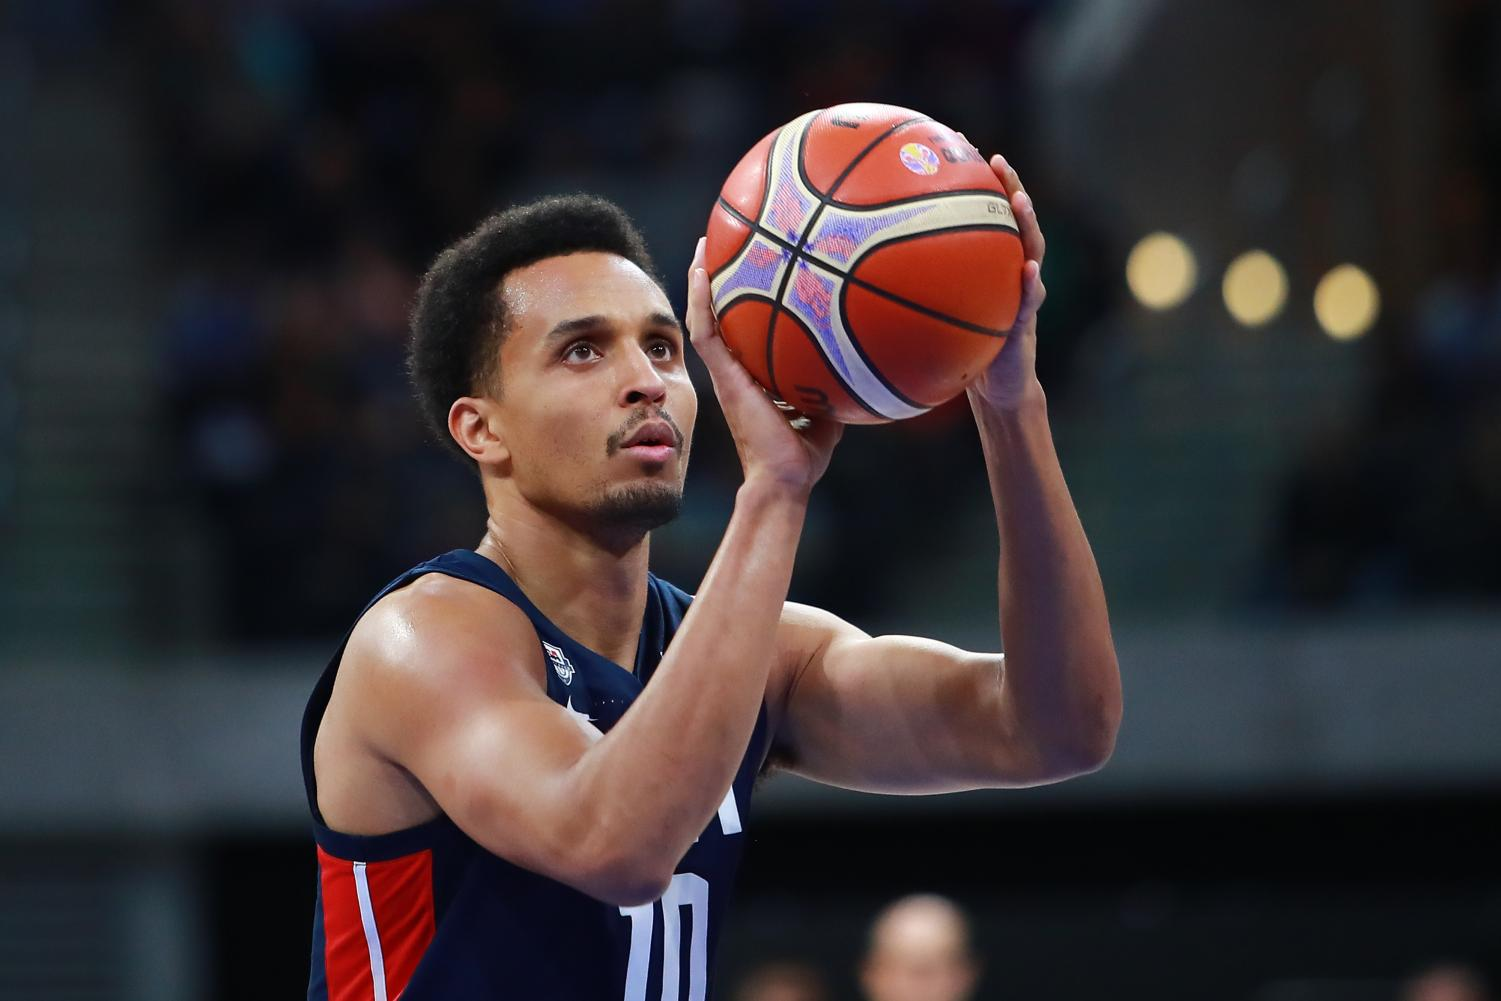 aba154d409d0 Men s Basketball  NU alum Reggie Hearn finishes standout 2018 with USA  Basketball Male Athlete of the Year recognition